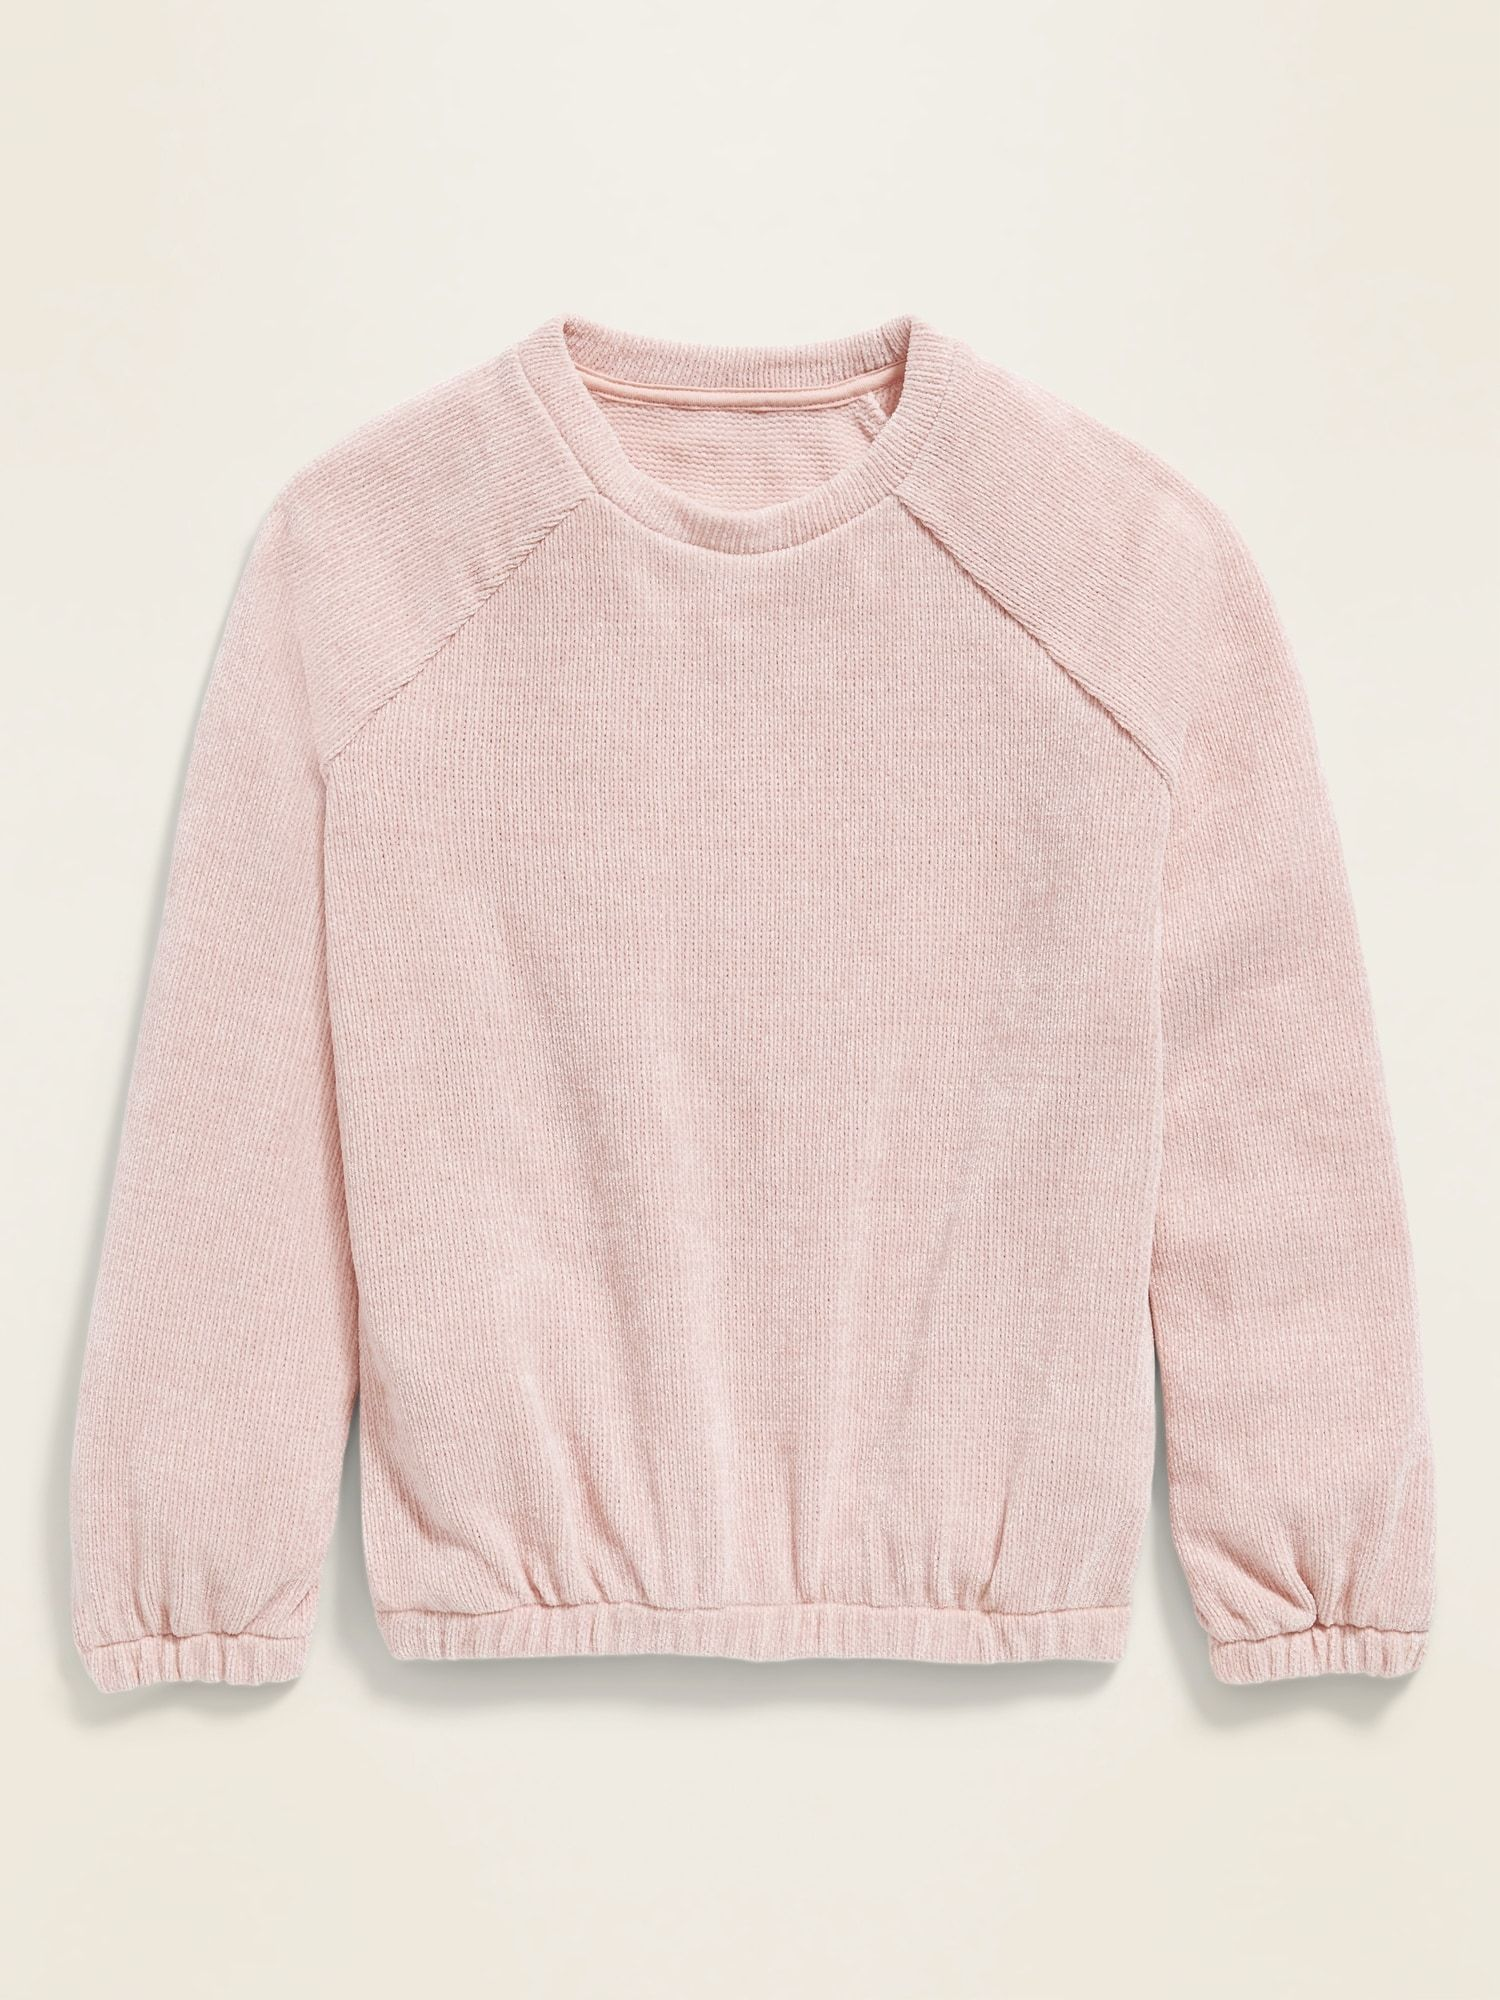 Cozy Pullover Sweater for Girls | Old Navy in 2020 | Cozy pullover, Girls  sweaters, Pullover sweaters